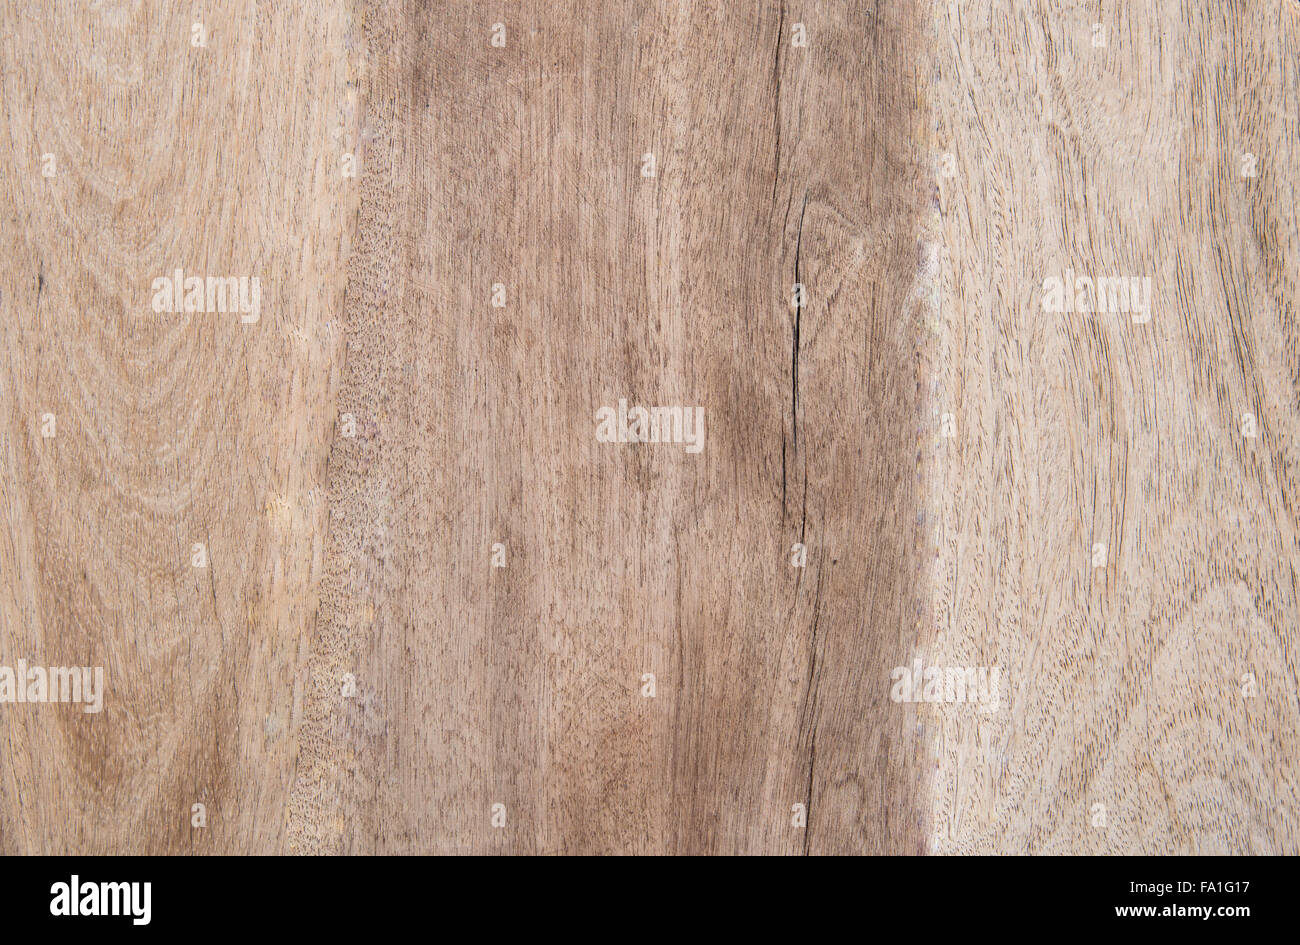 A wood texture and background. - Stock Image